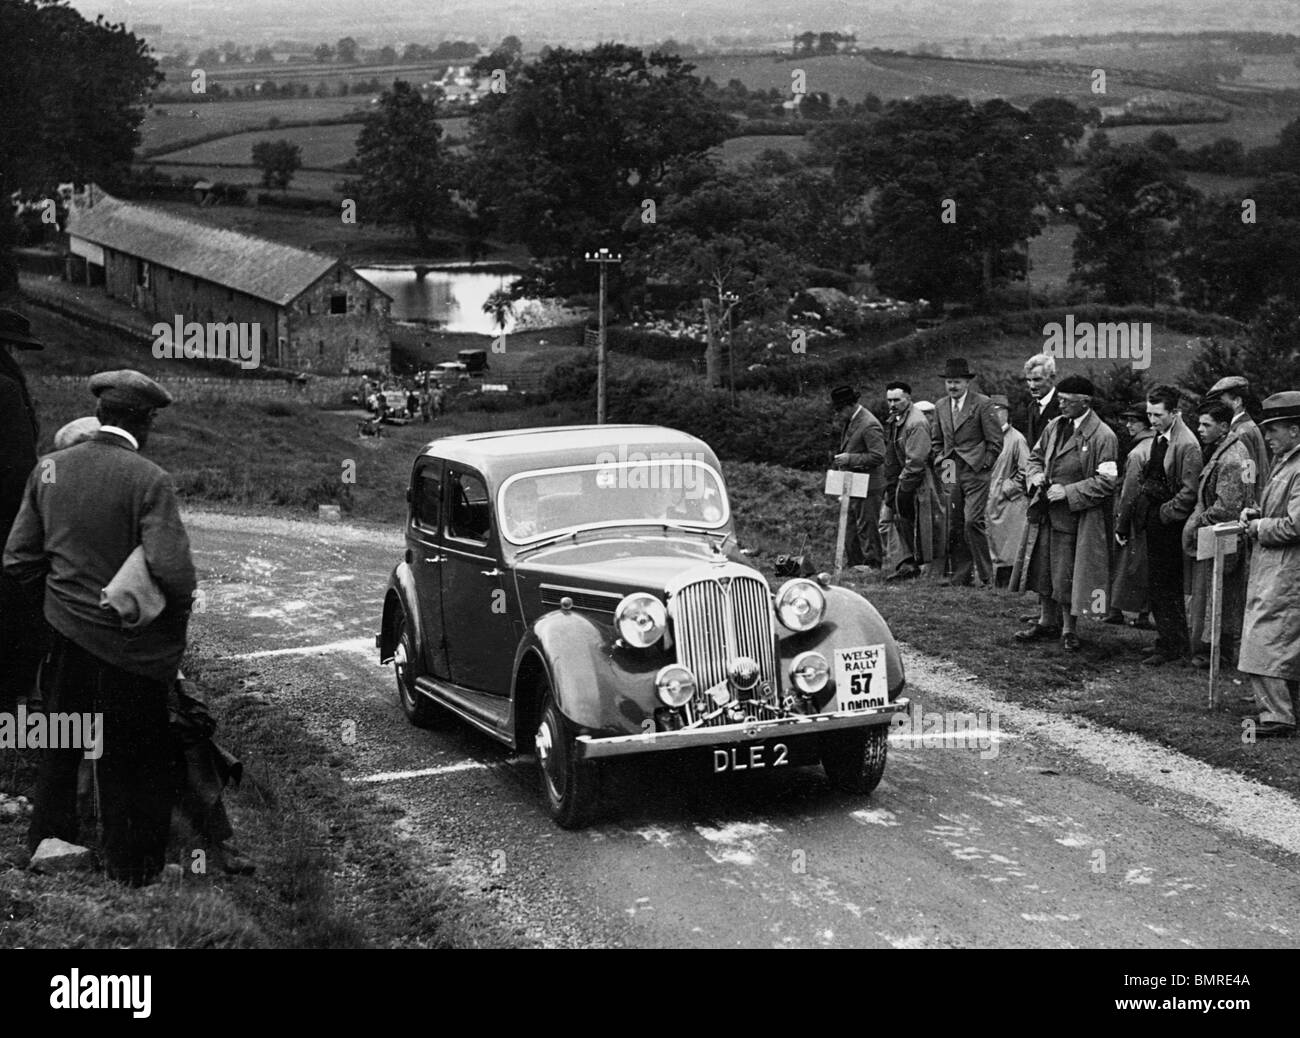 Welsh Rally 1937. Rover Speed 20. - Stock Image